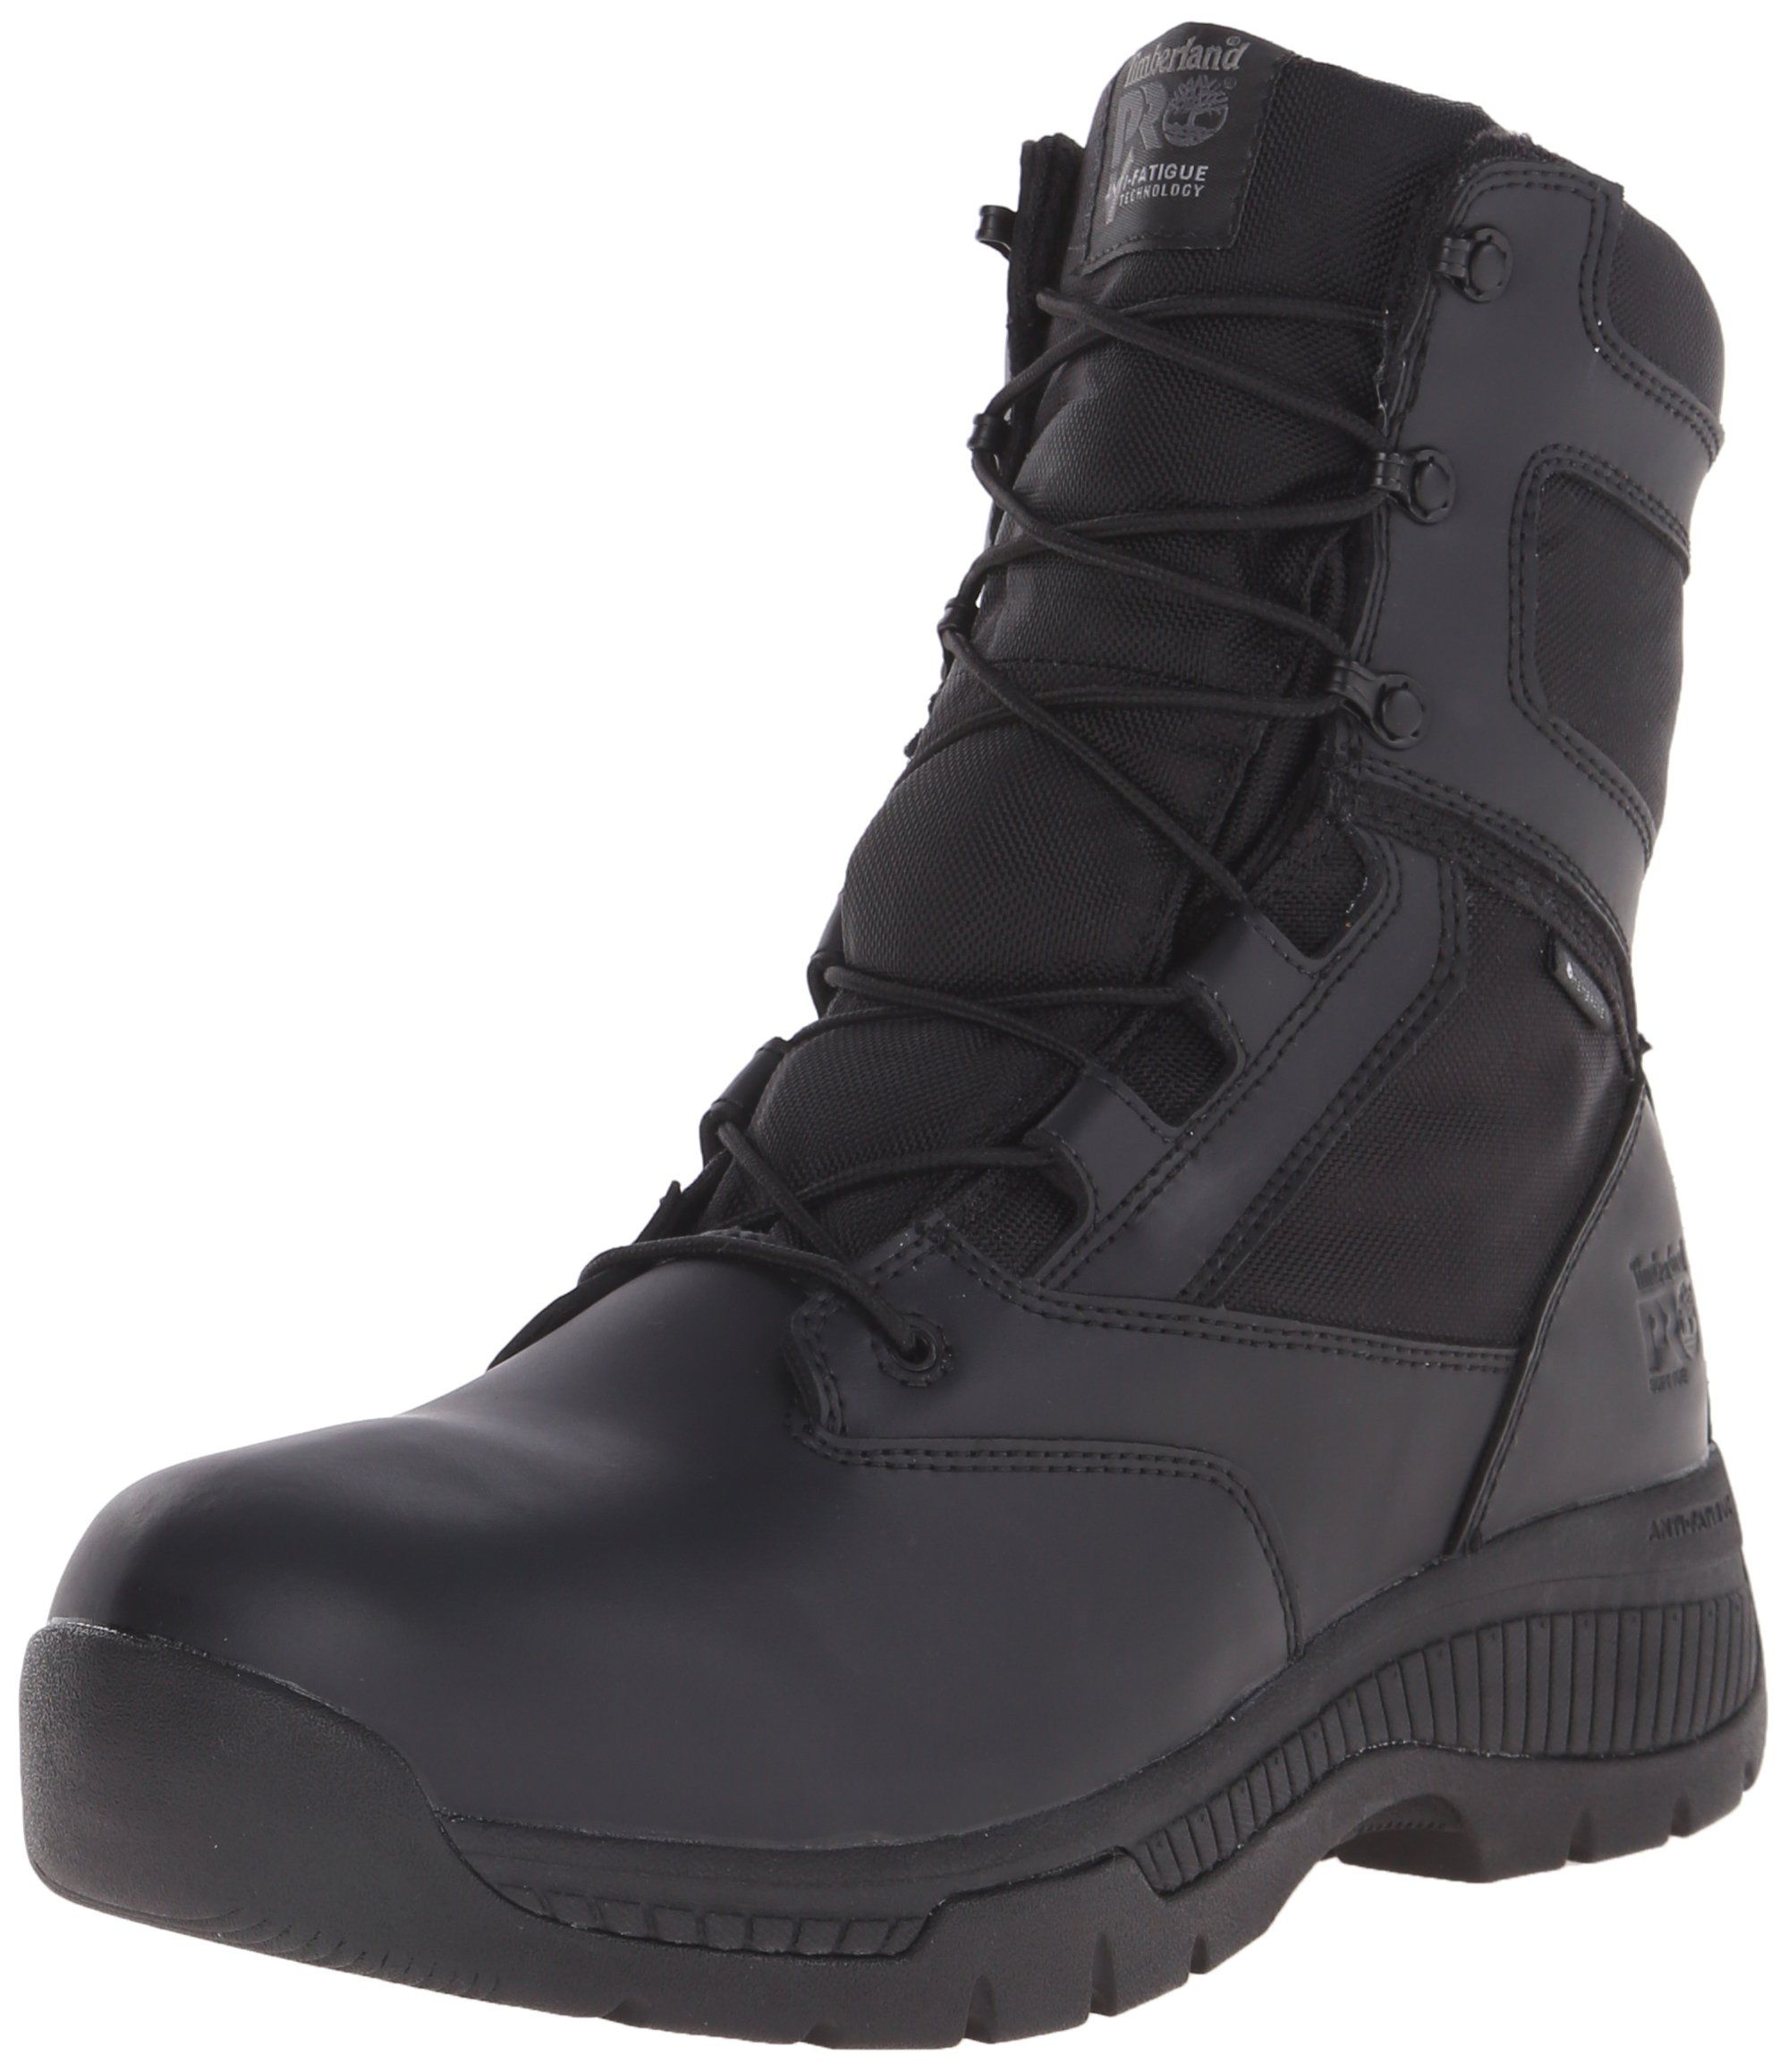 Timberland PRO Mens 8 Inch Valor Soft Toe Waterproof Side Zip Work Boot  Black Smooth Leather